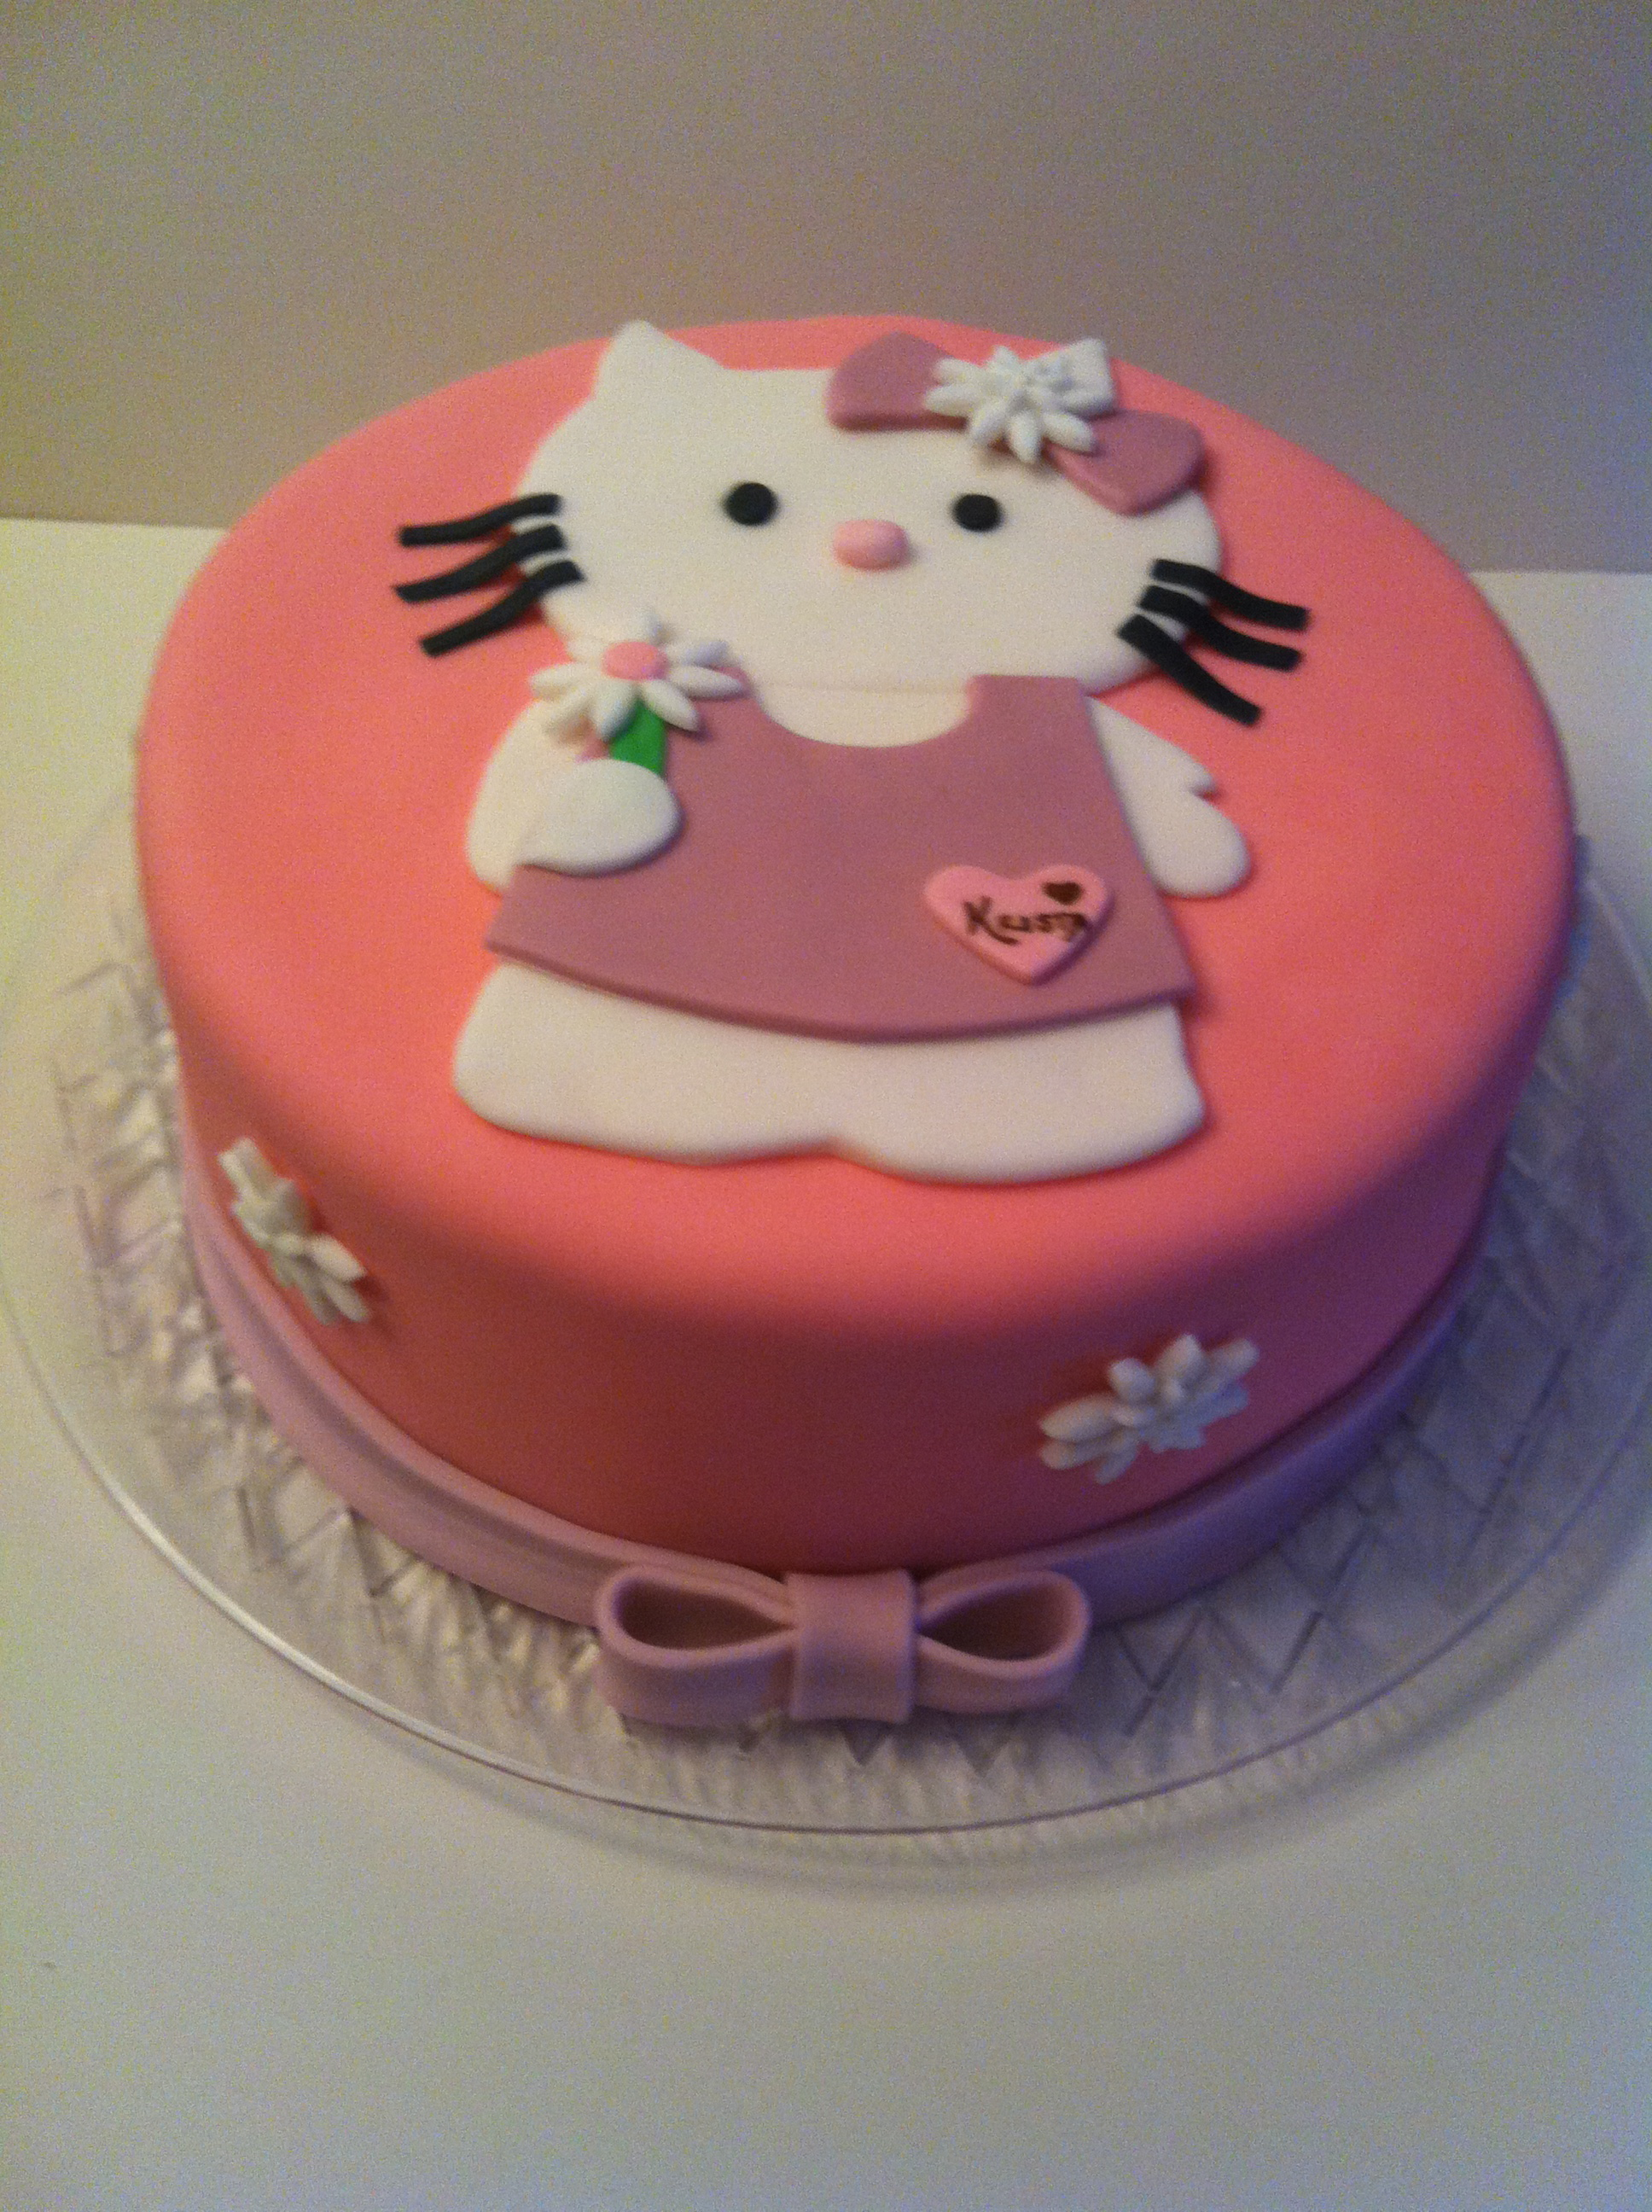 Astounding 9 All Hello Kitty Birthday Cakes For 11 Year Olds Photo 2 Year Personalised Birthday Cards Arneslily Jamesorg